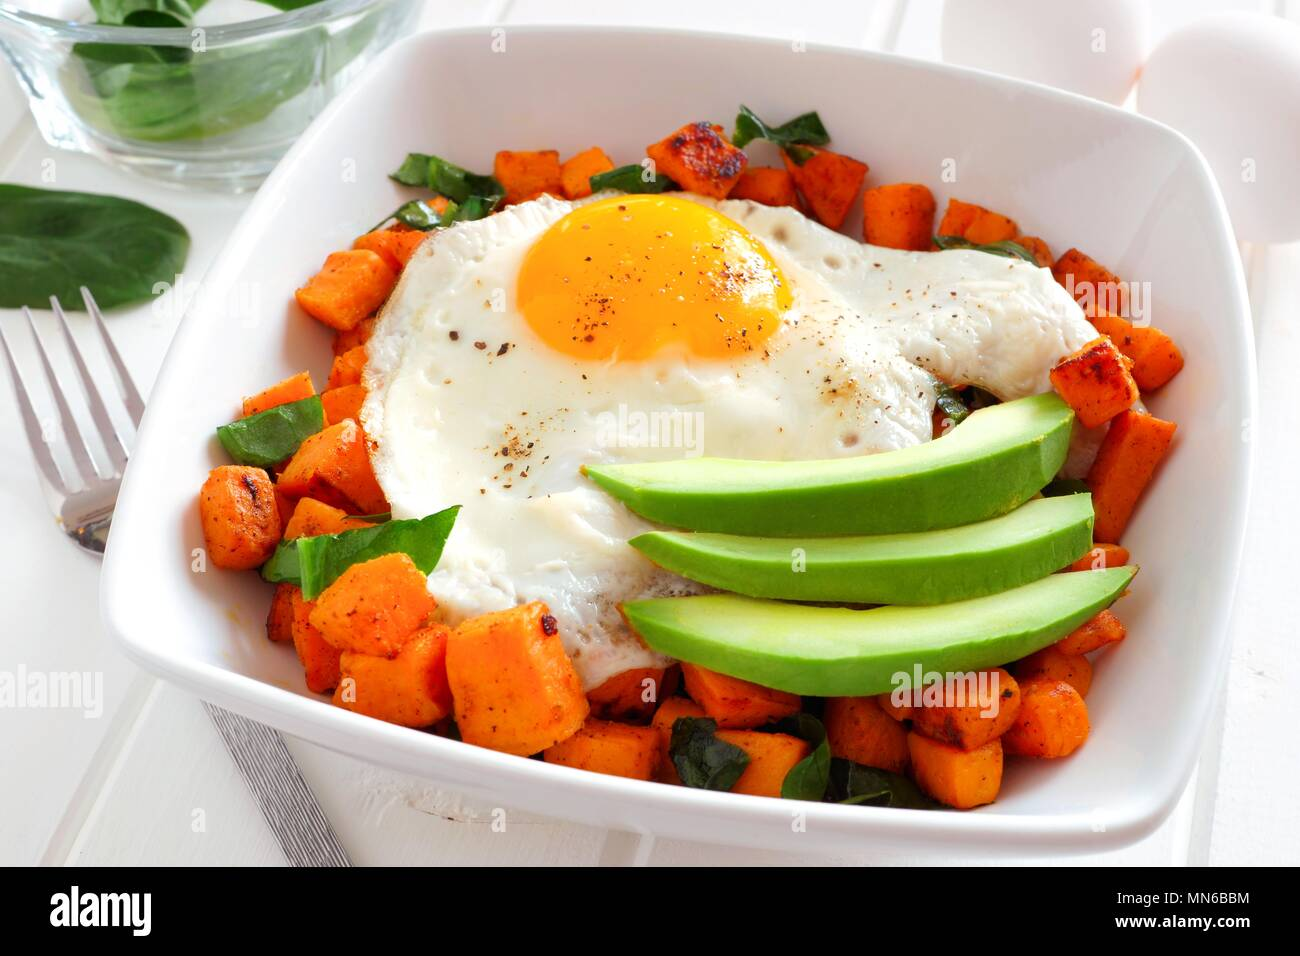 Breakfast nutrient bowl with sweet potato, egg, avocado and spinach, close up table scene - Stock Image